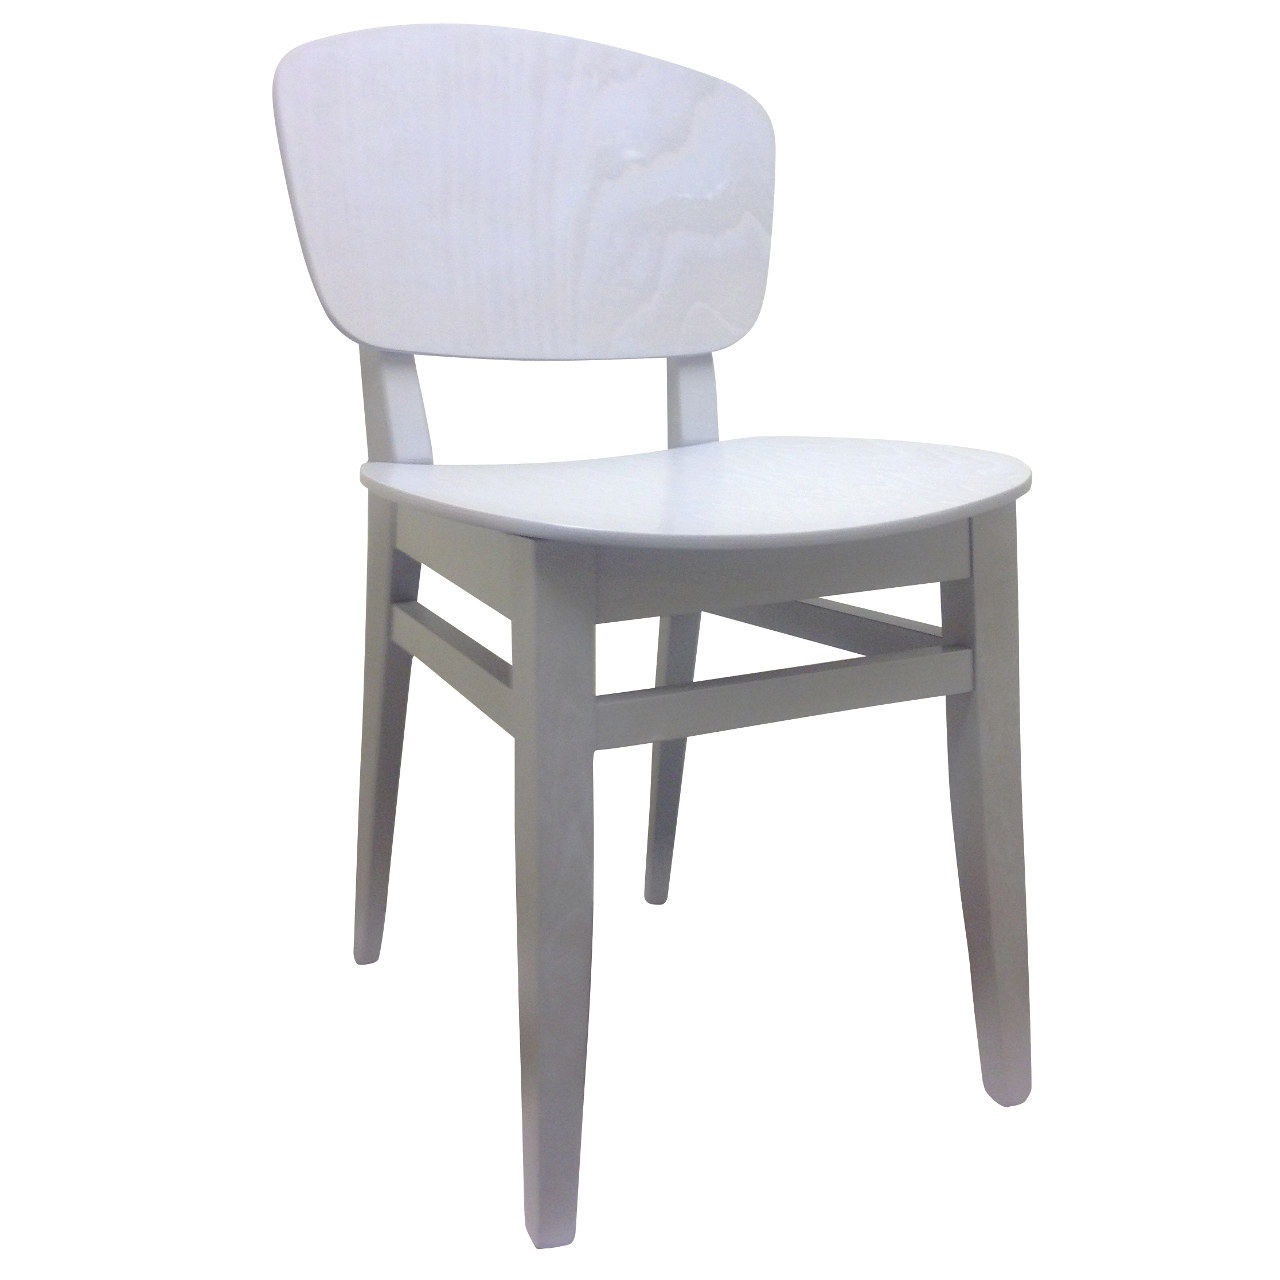 Manorcraft modern bakery chair  Solid rounded comfortable shape